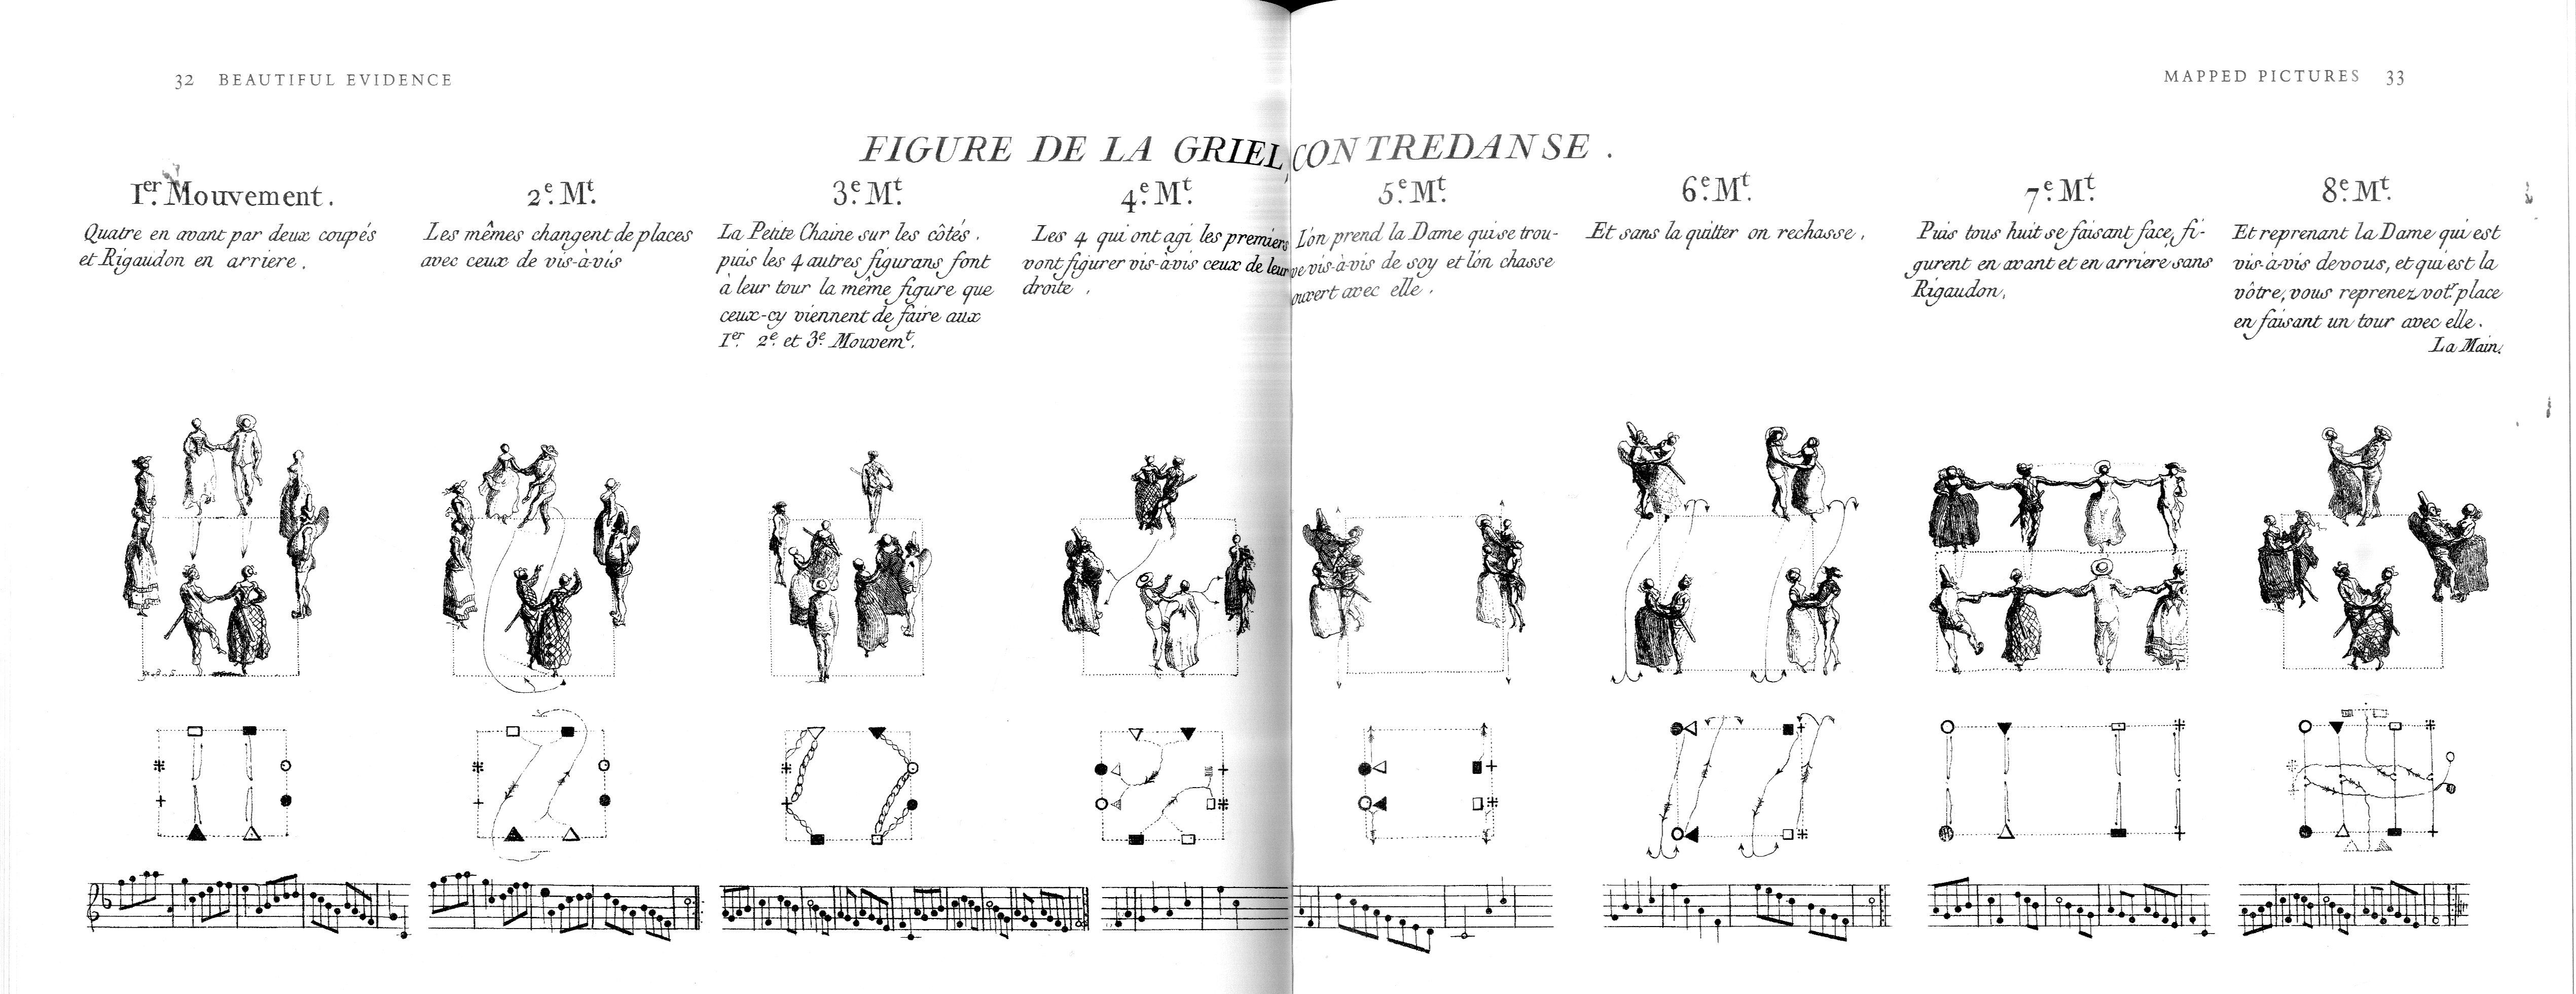 Dance Notation Redrawn From La Cuisse  Cailleau  U0026 Mlle Castagnery  1762